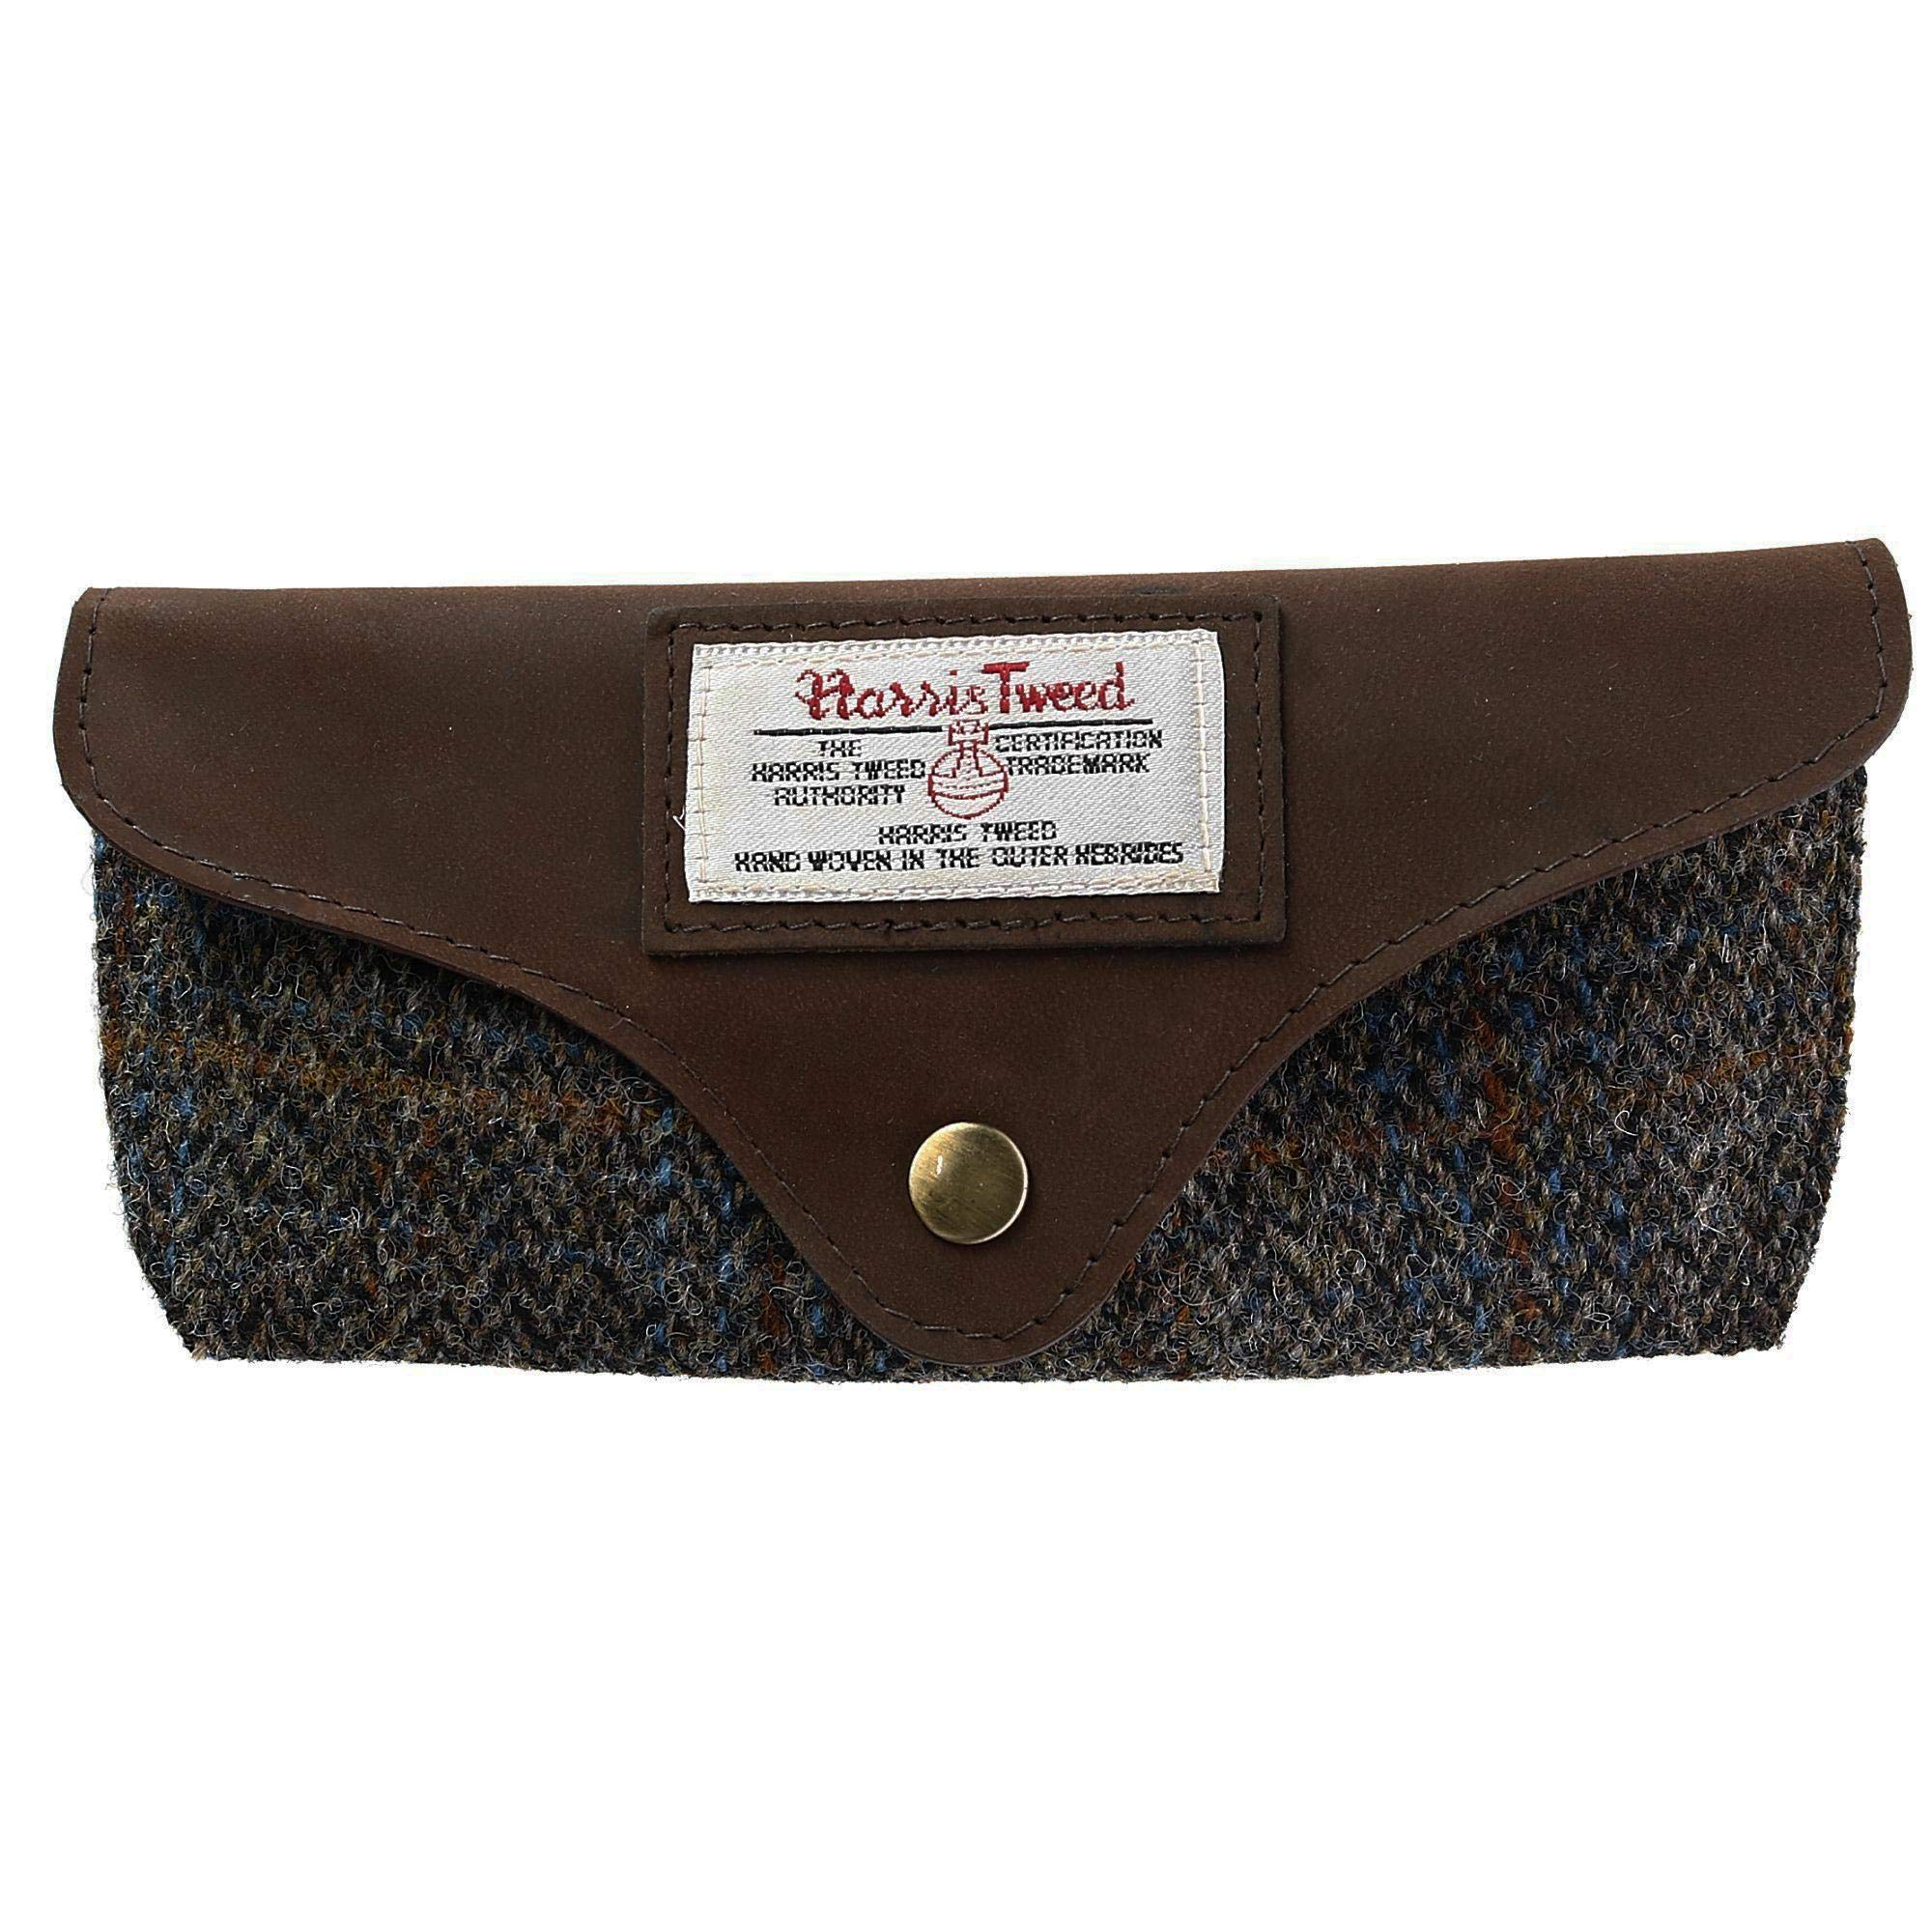 The British Bag Company Carloway Swoop Harris Tweed and Leather Glasses Case, Brown by The British Bag Company